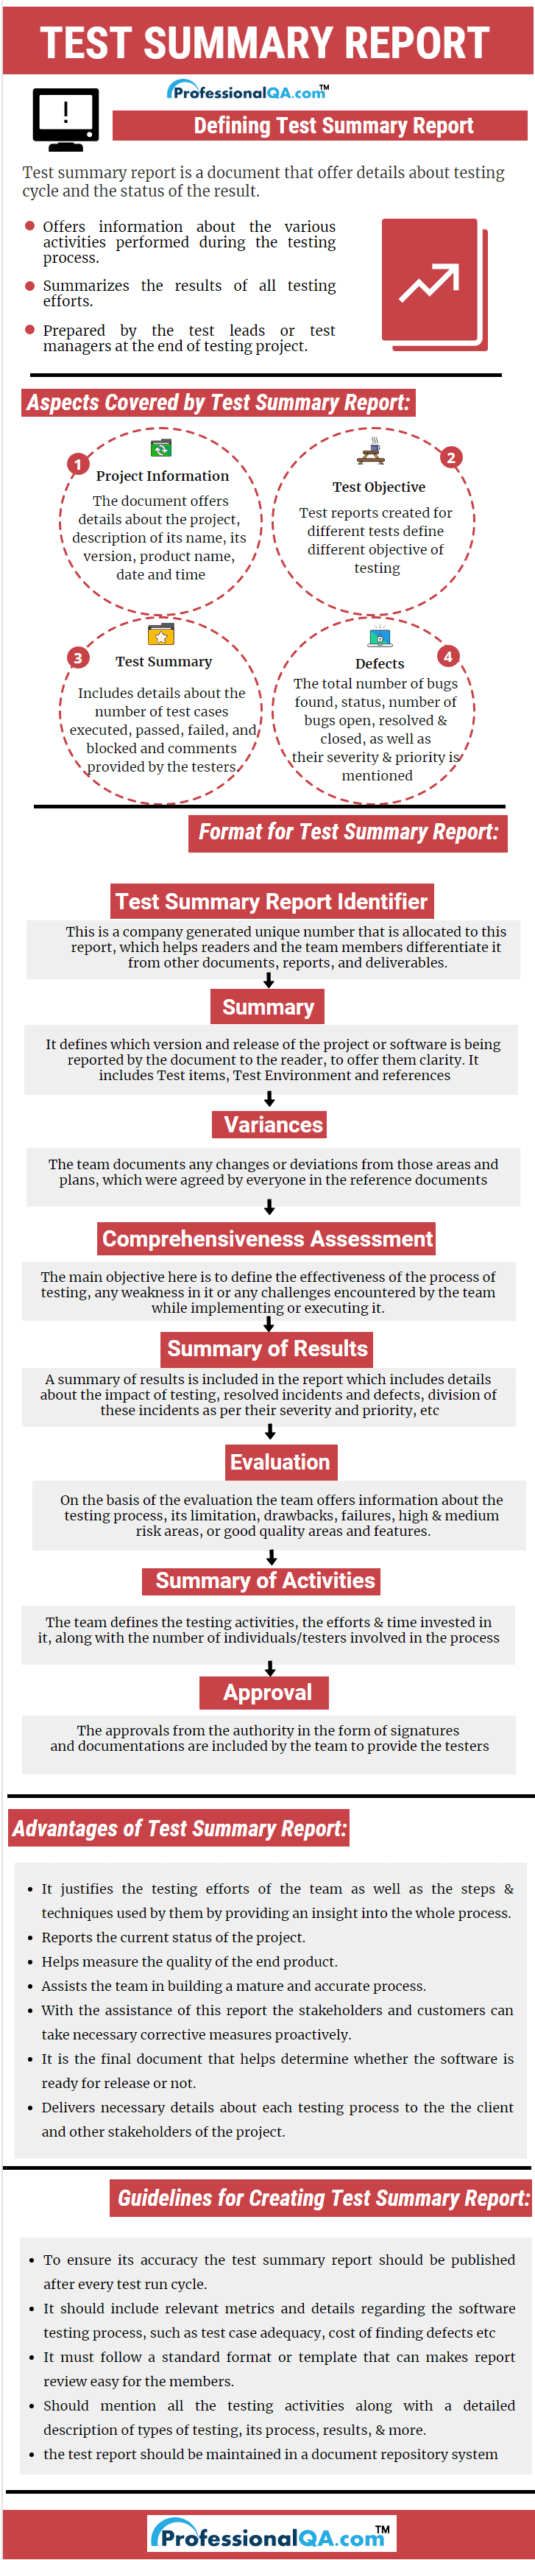 Test Summary Report |Professionalqa With Test Summary Report Template